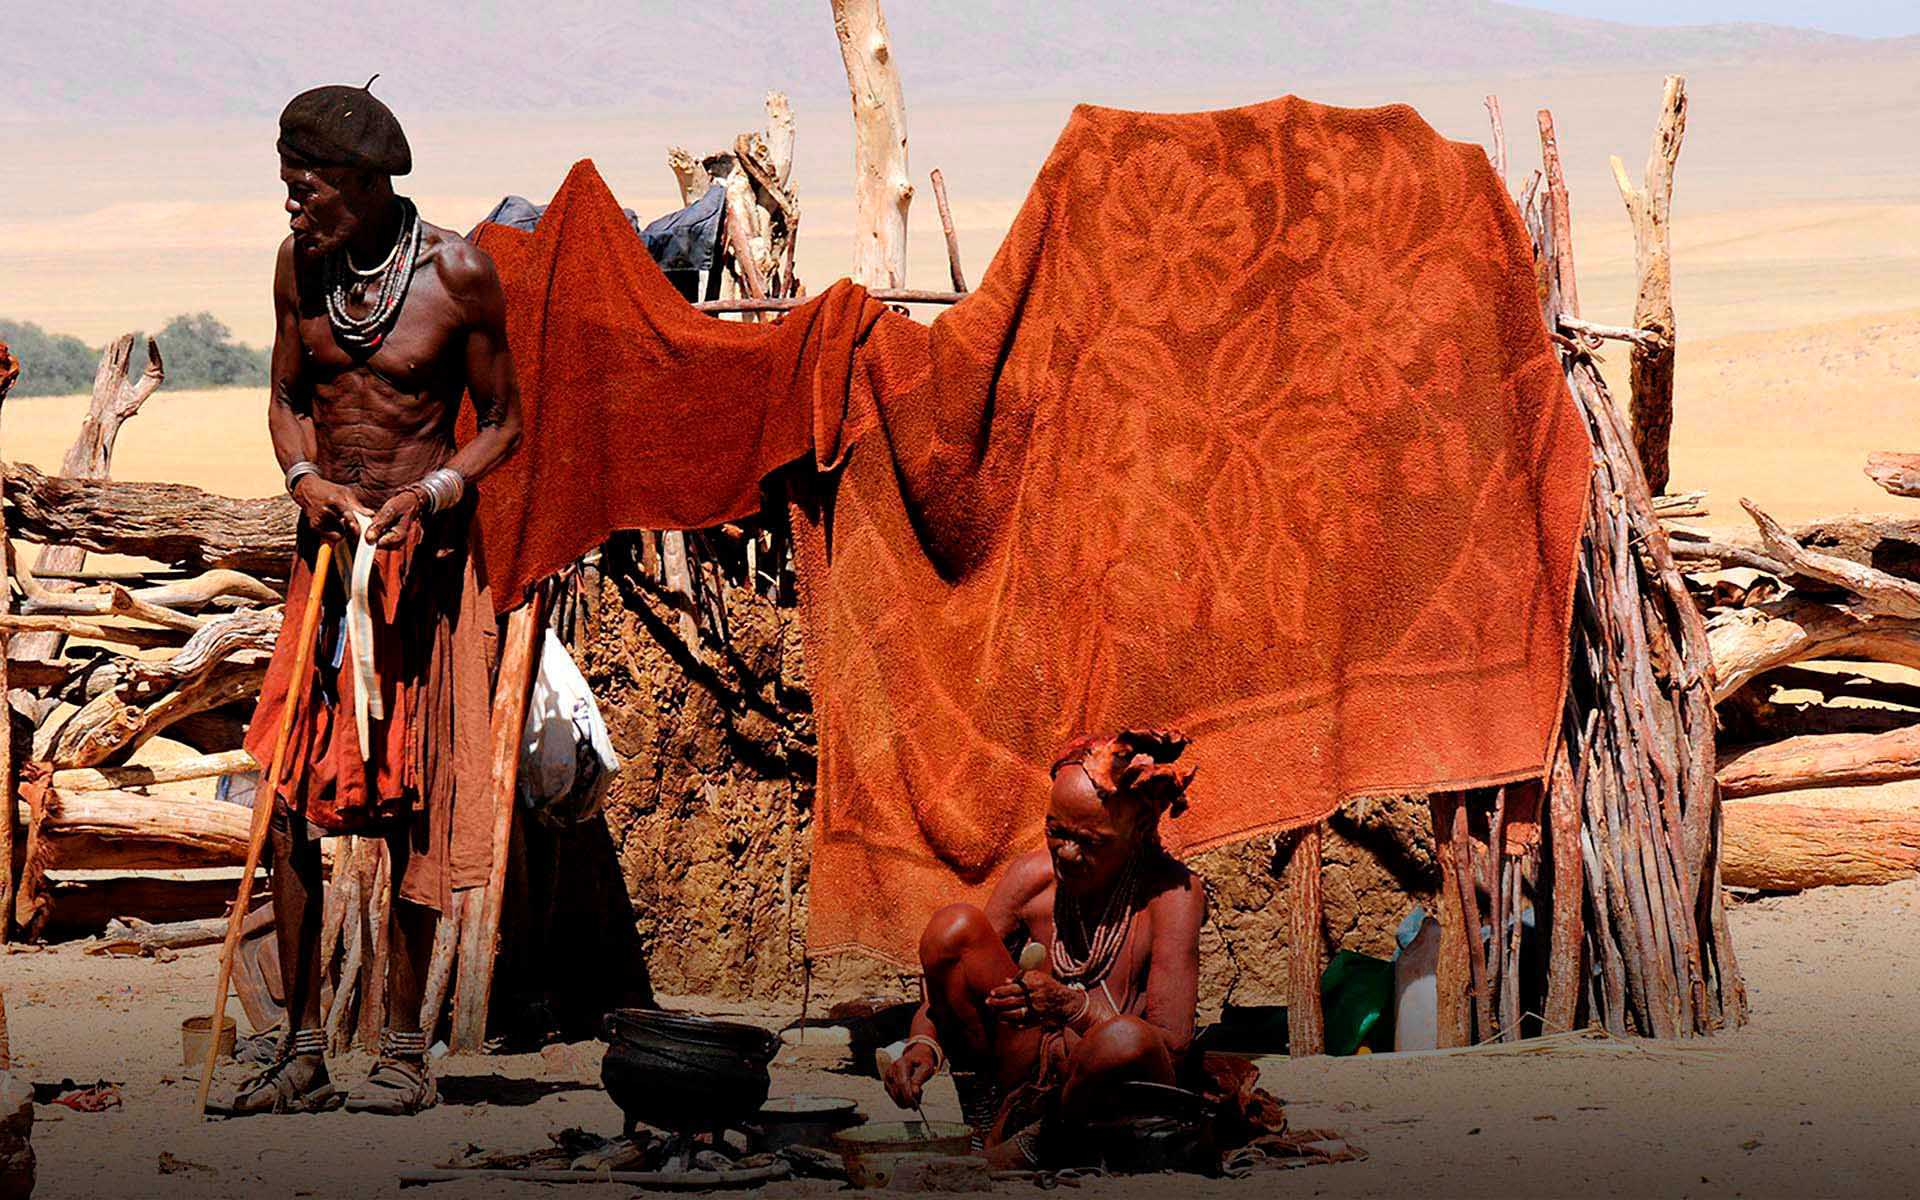 Himba in the Kaokoveld